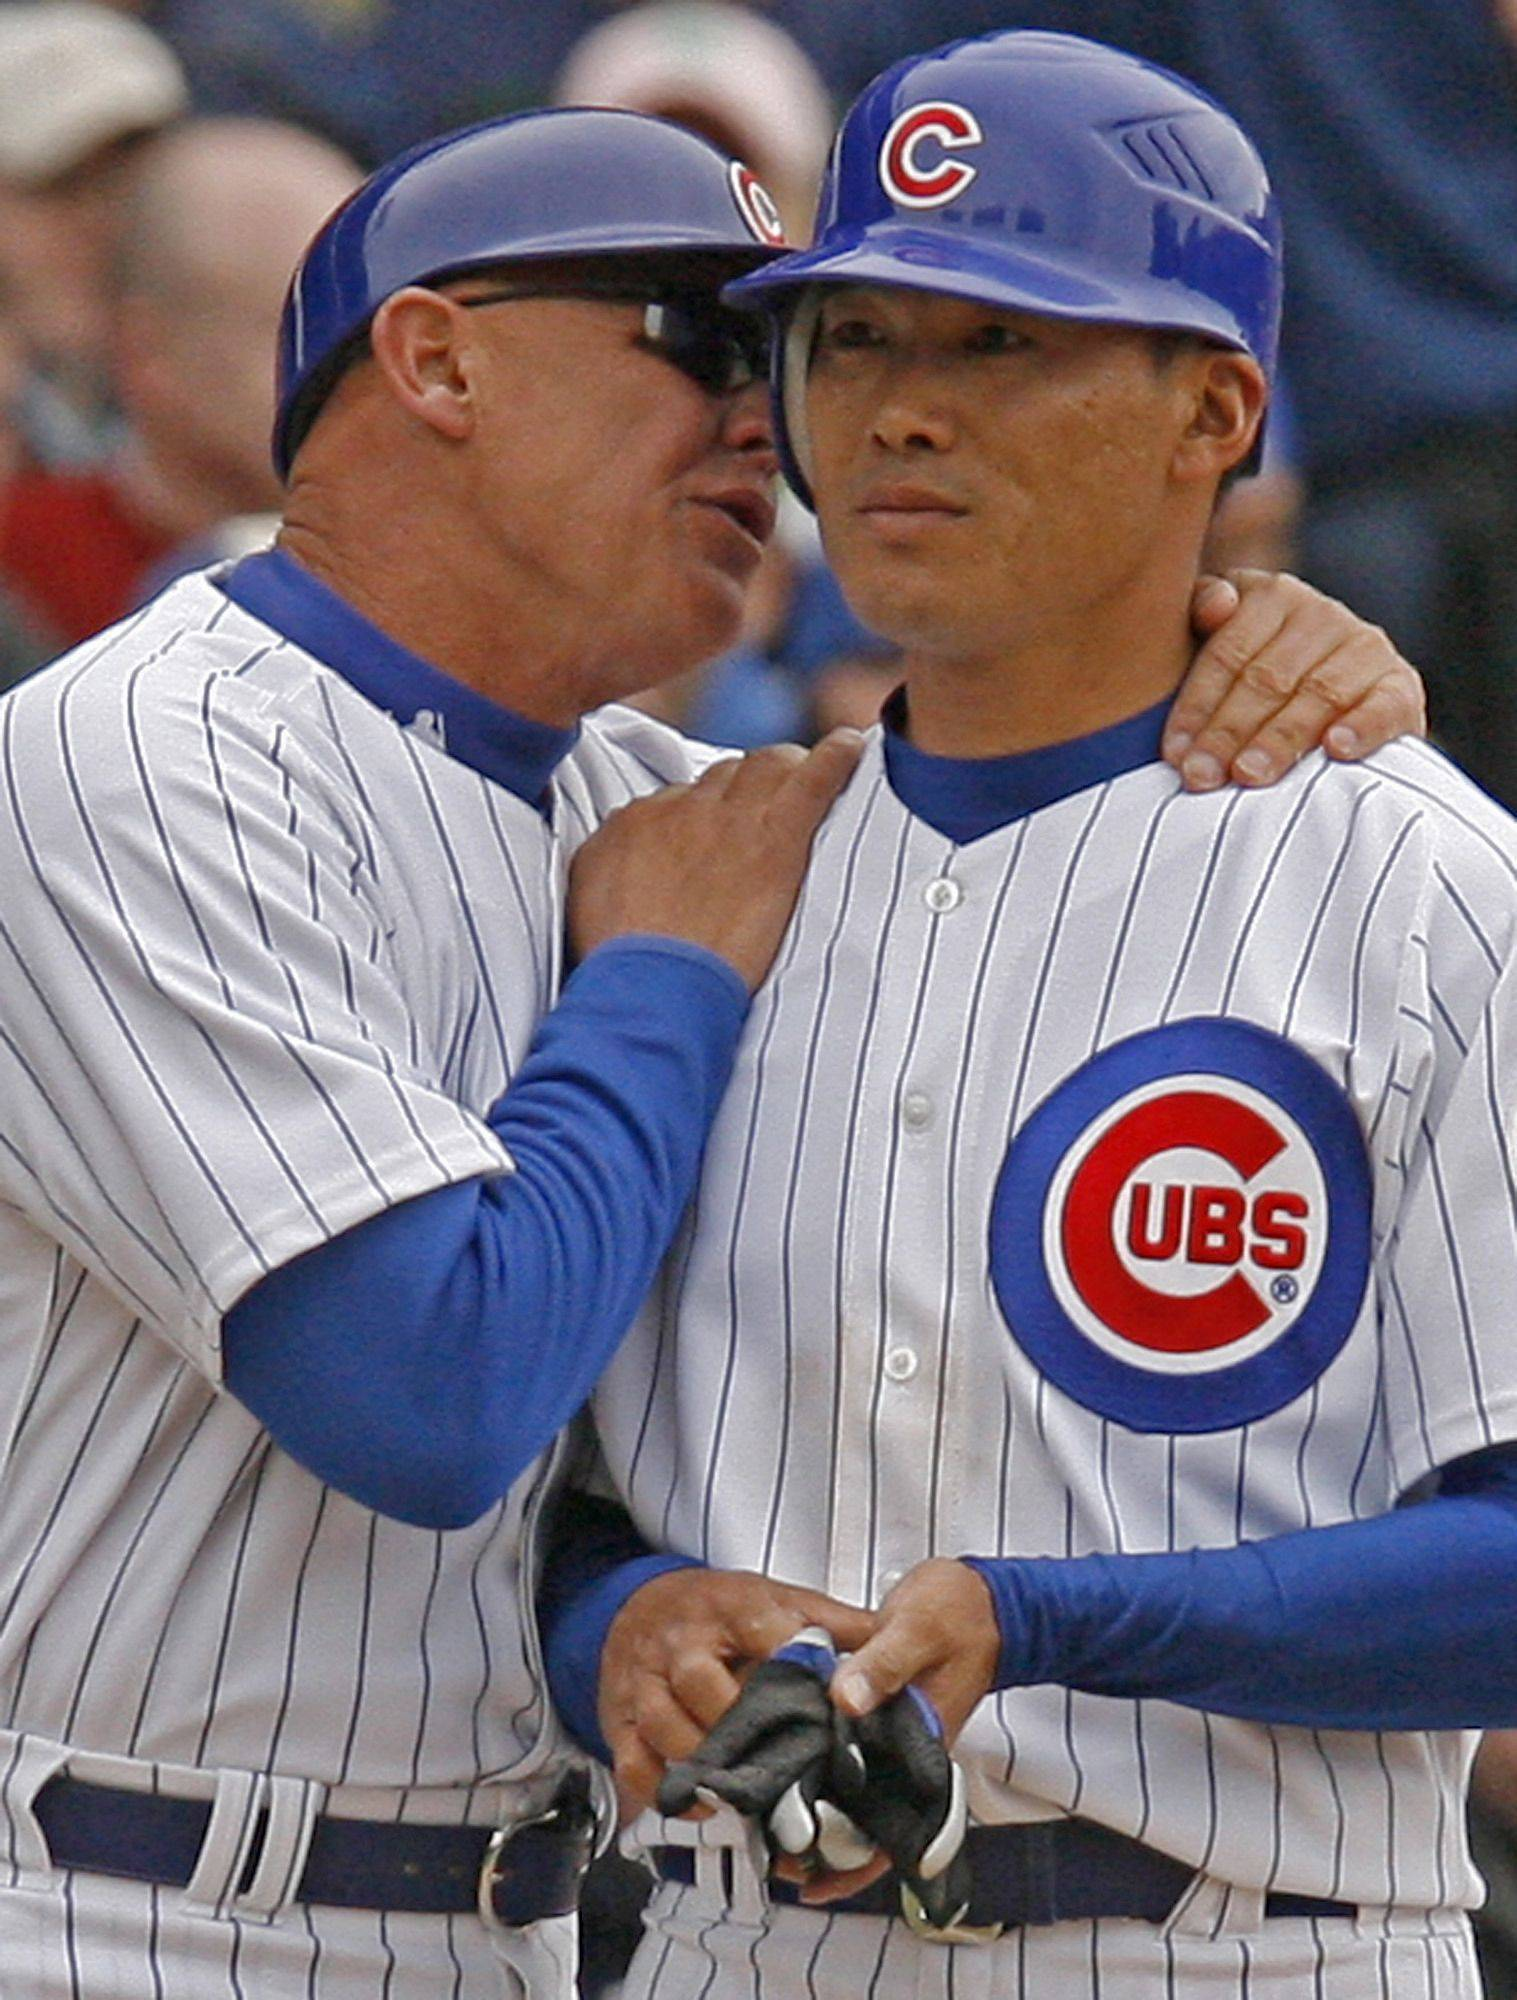 Chicago Cubs third base coach Mike Quade, left, talks to player Kosuke Fukudome of Japan, during the fourth inning of a baseball game against Milwaukee Brewers.